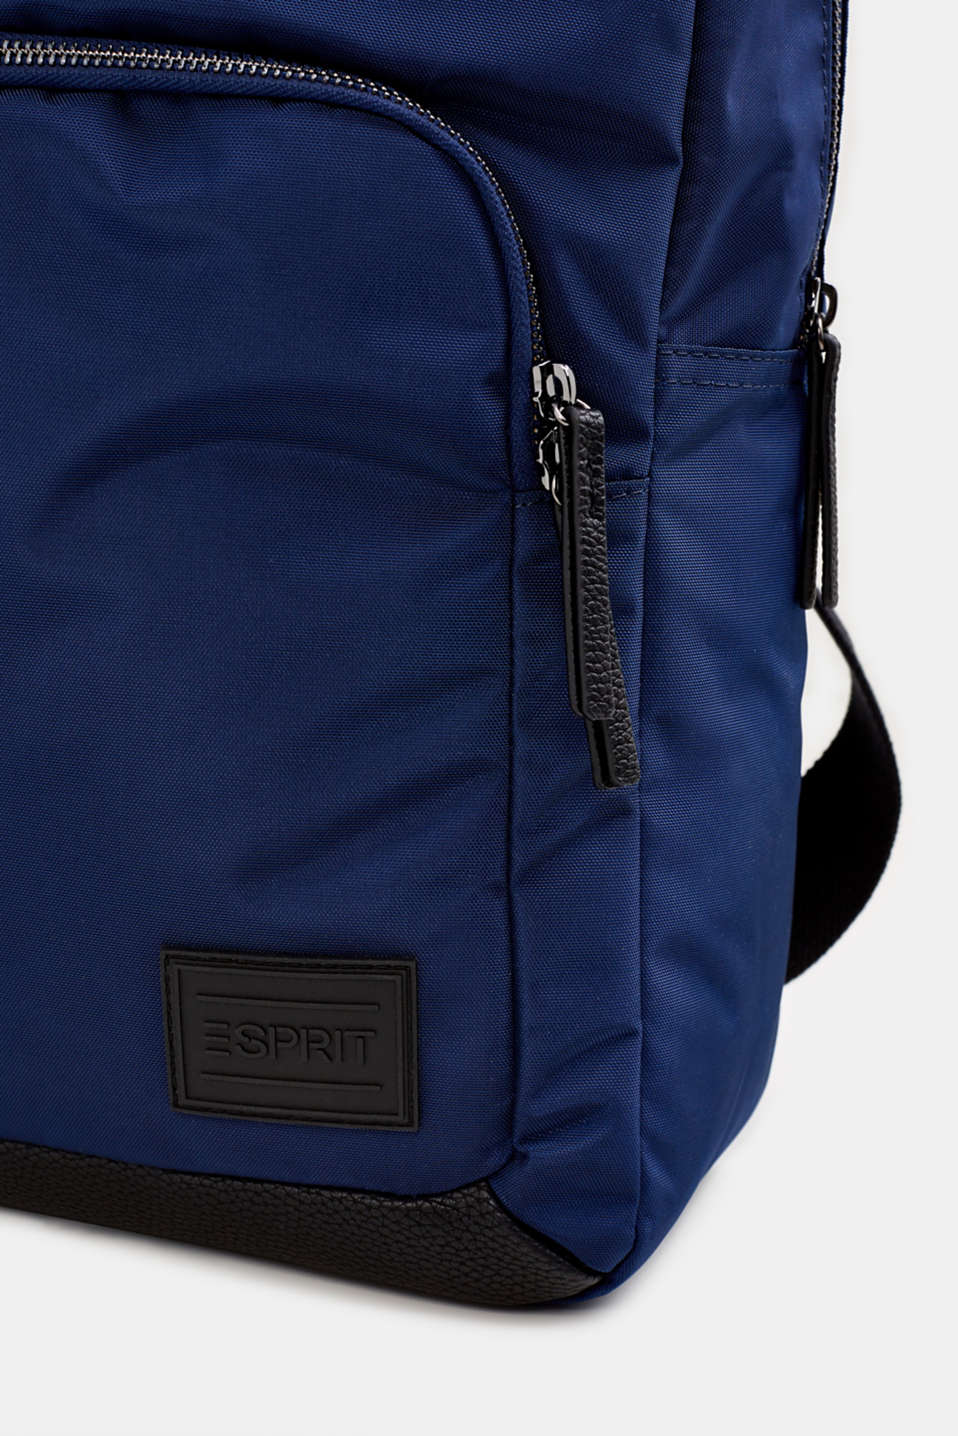 Nylon rucksack, NAVY, detail image number 6